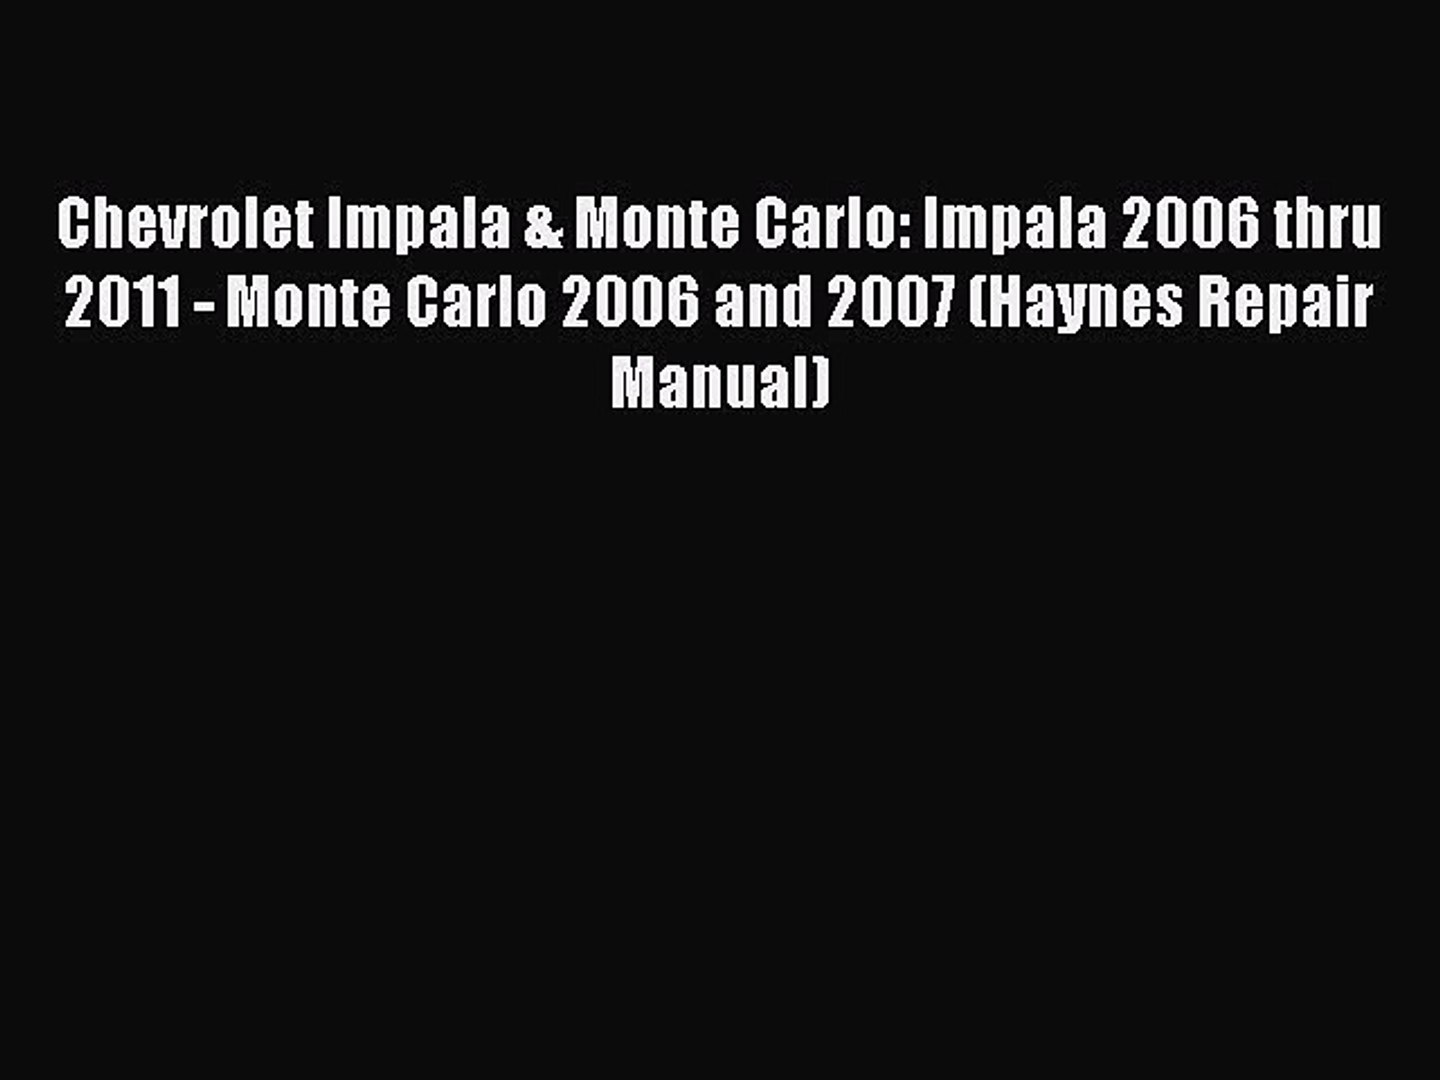 [PDF Download] Chevrolet Impala & Monte Carlo: Impala 2006 thru 2011 - Monte Carlo 2006 and